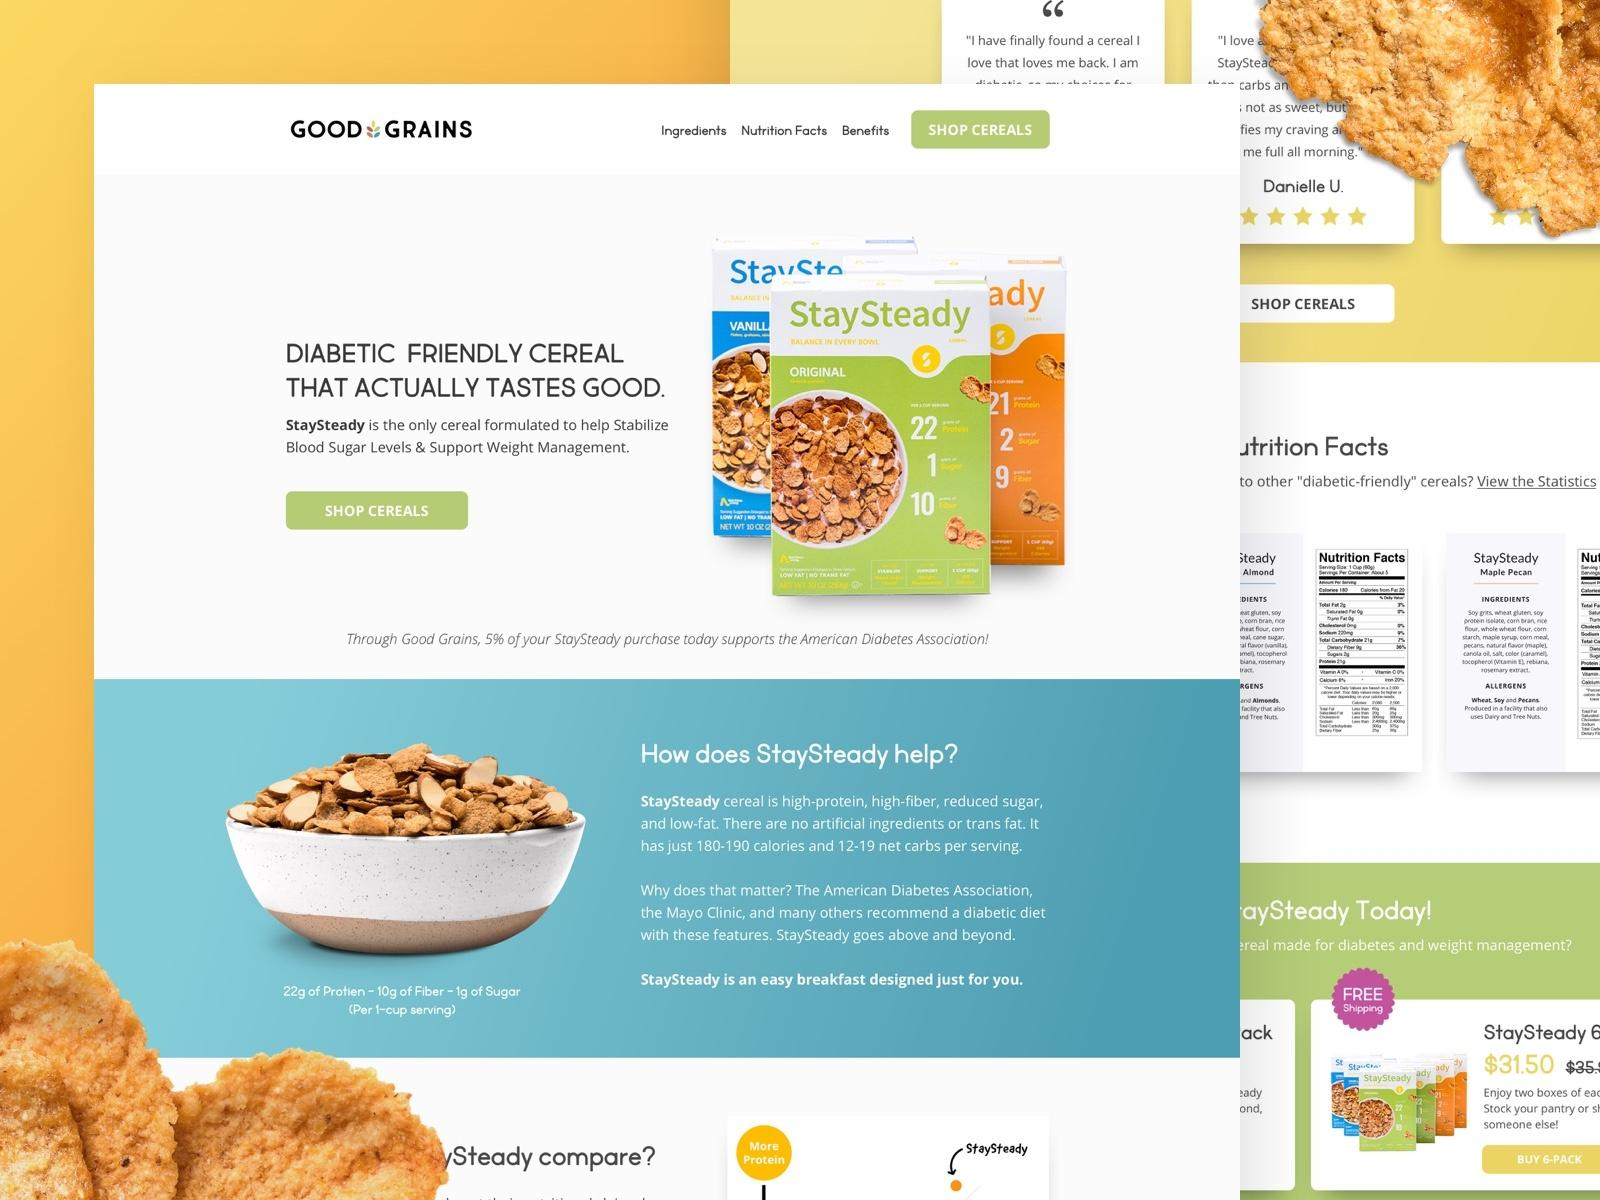 case study example of Good Grains - a former KlientBoost optimization glory